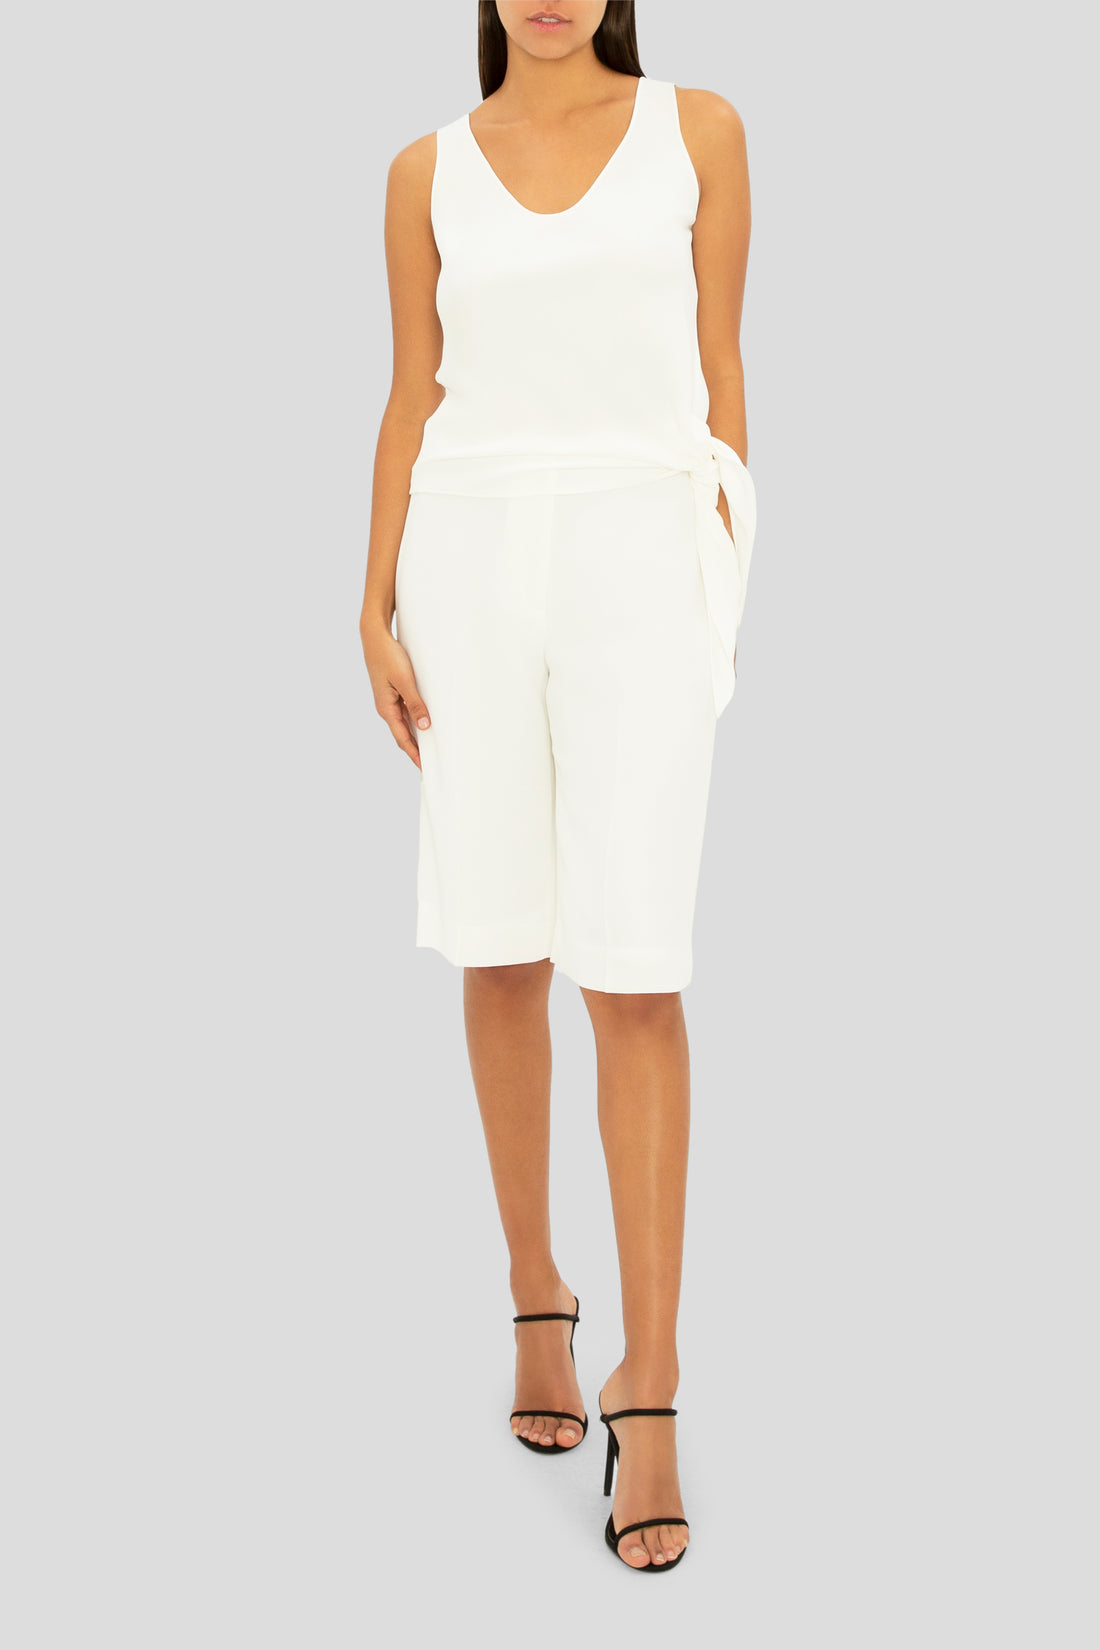 THE WHITE DREAM CAMISOLE